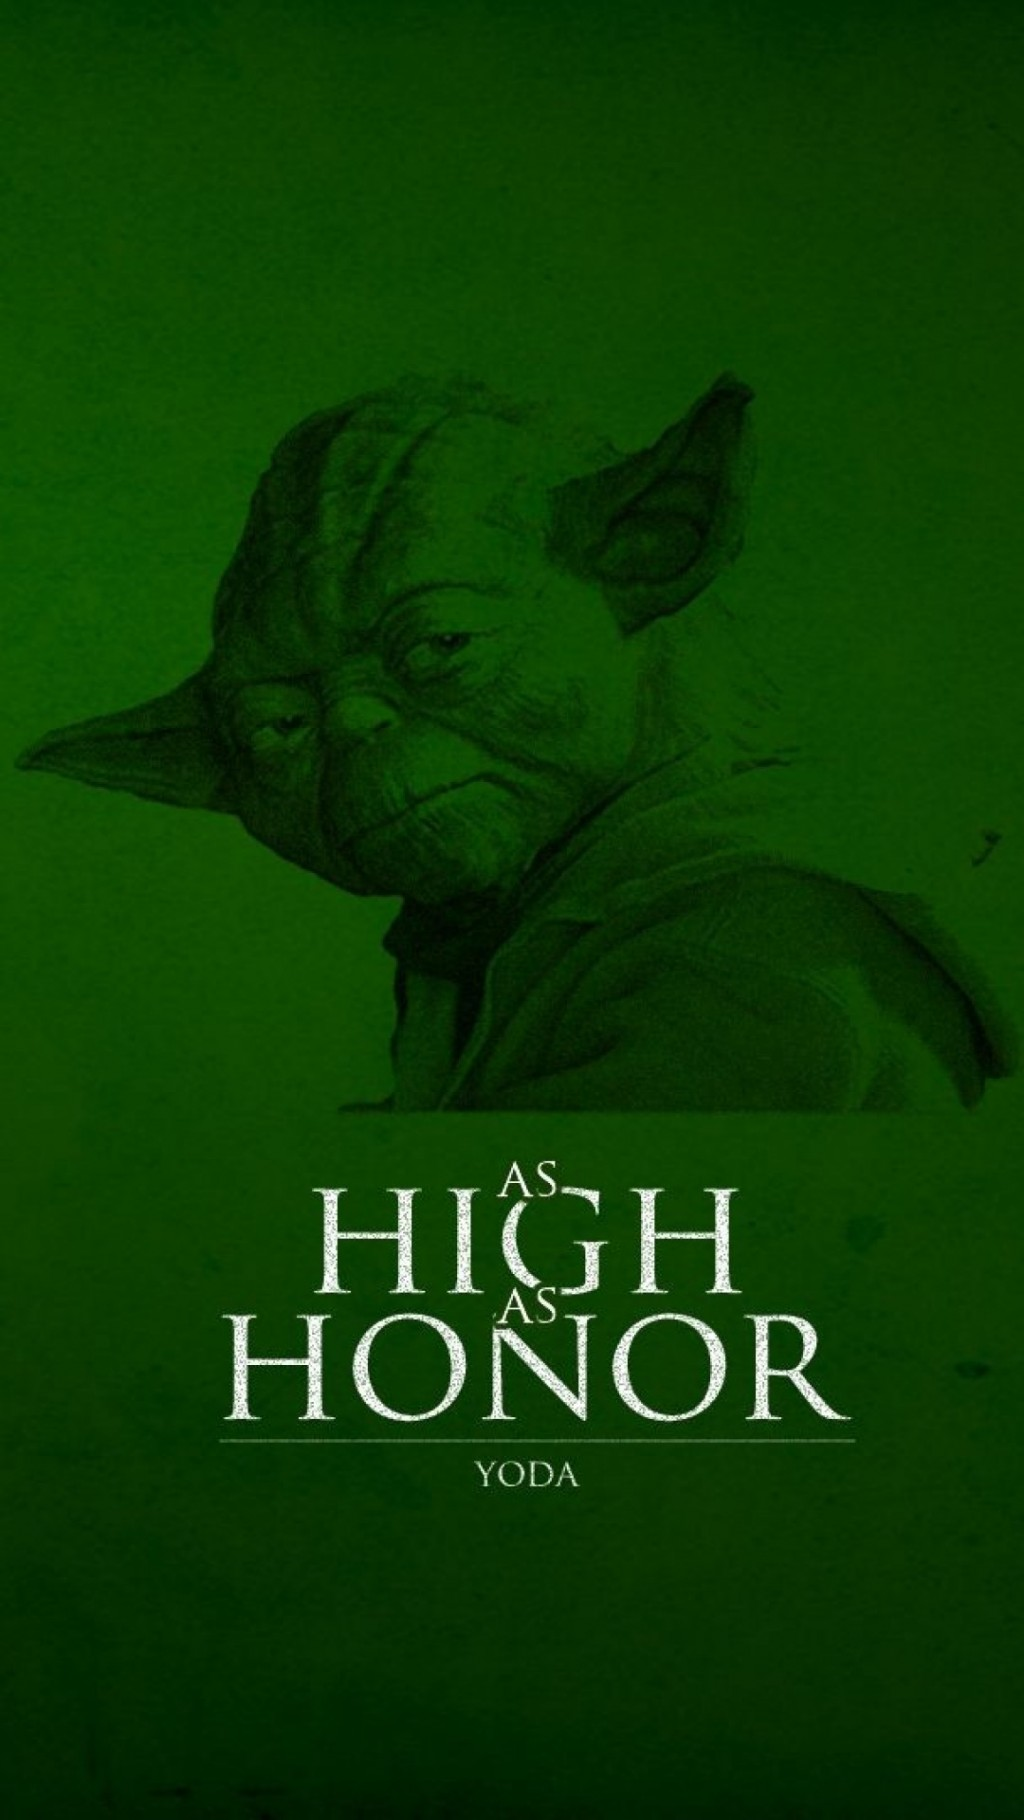 Yoda Wallpaper Star Wars photos of Epic Star Wars Iphone Wallpaper 1024x1820